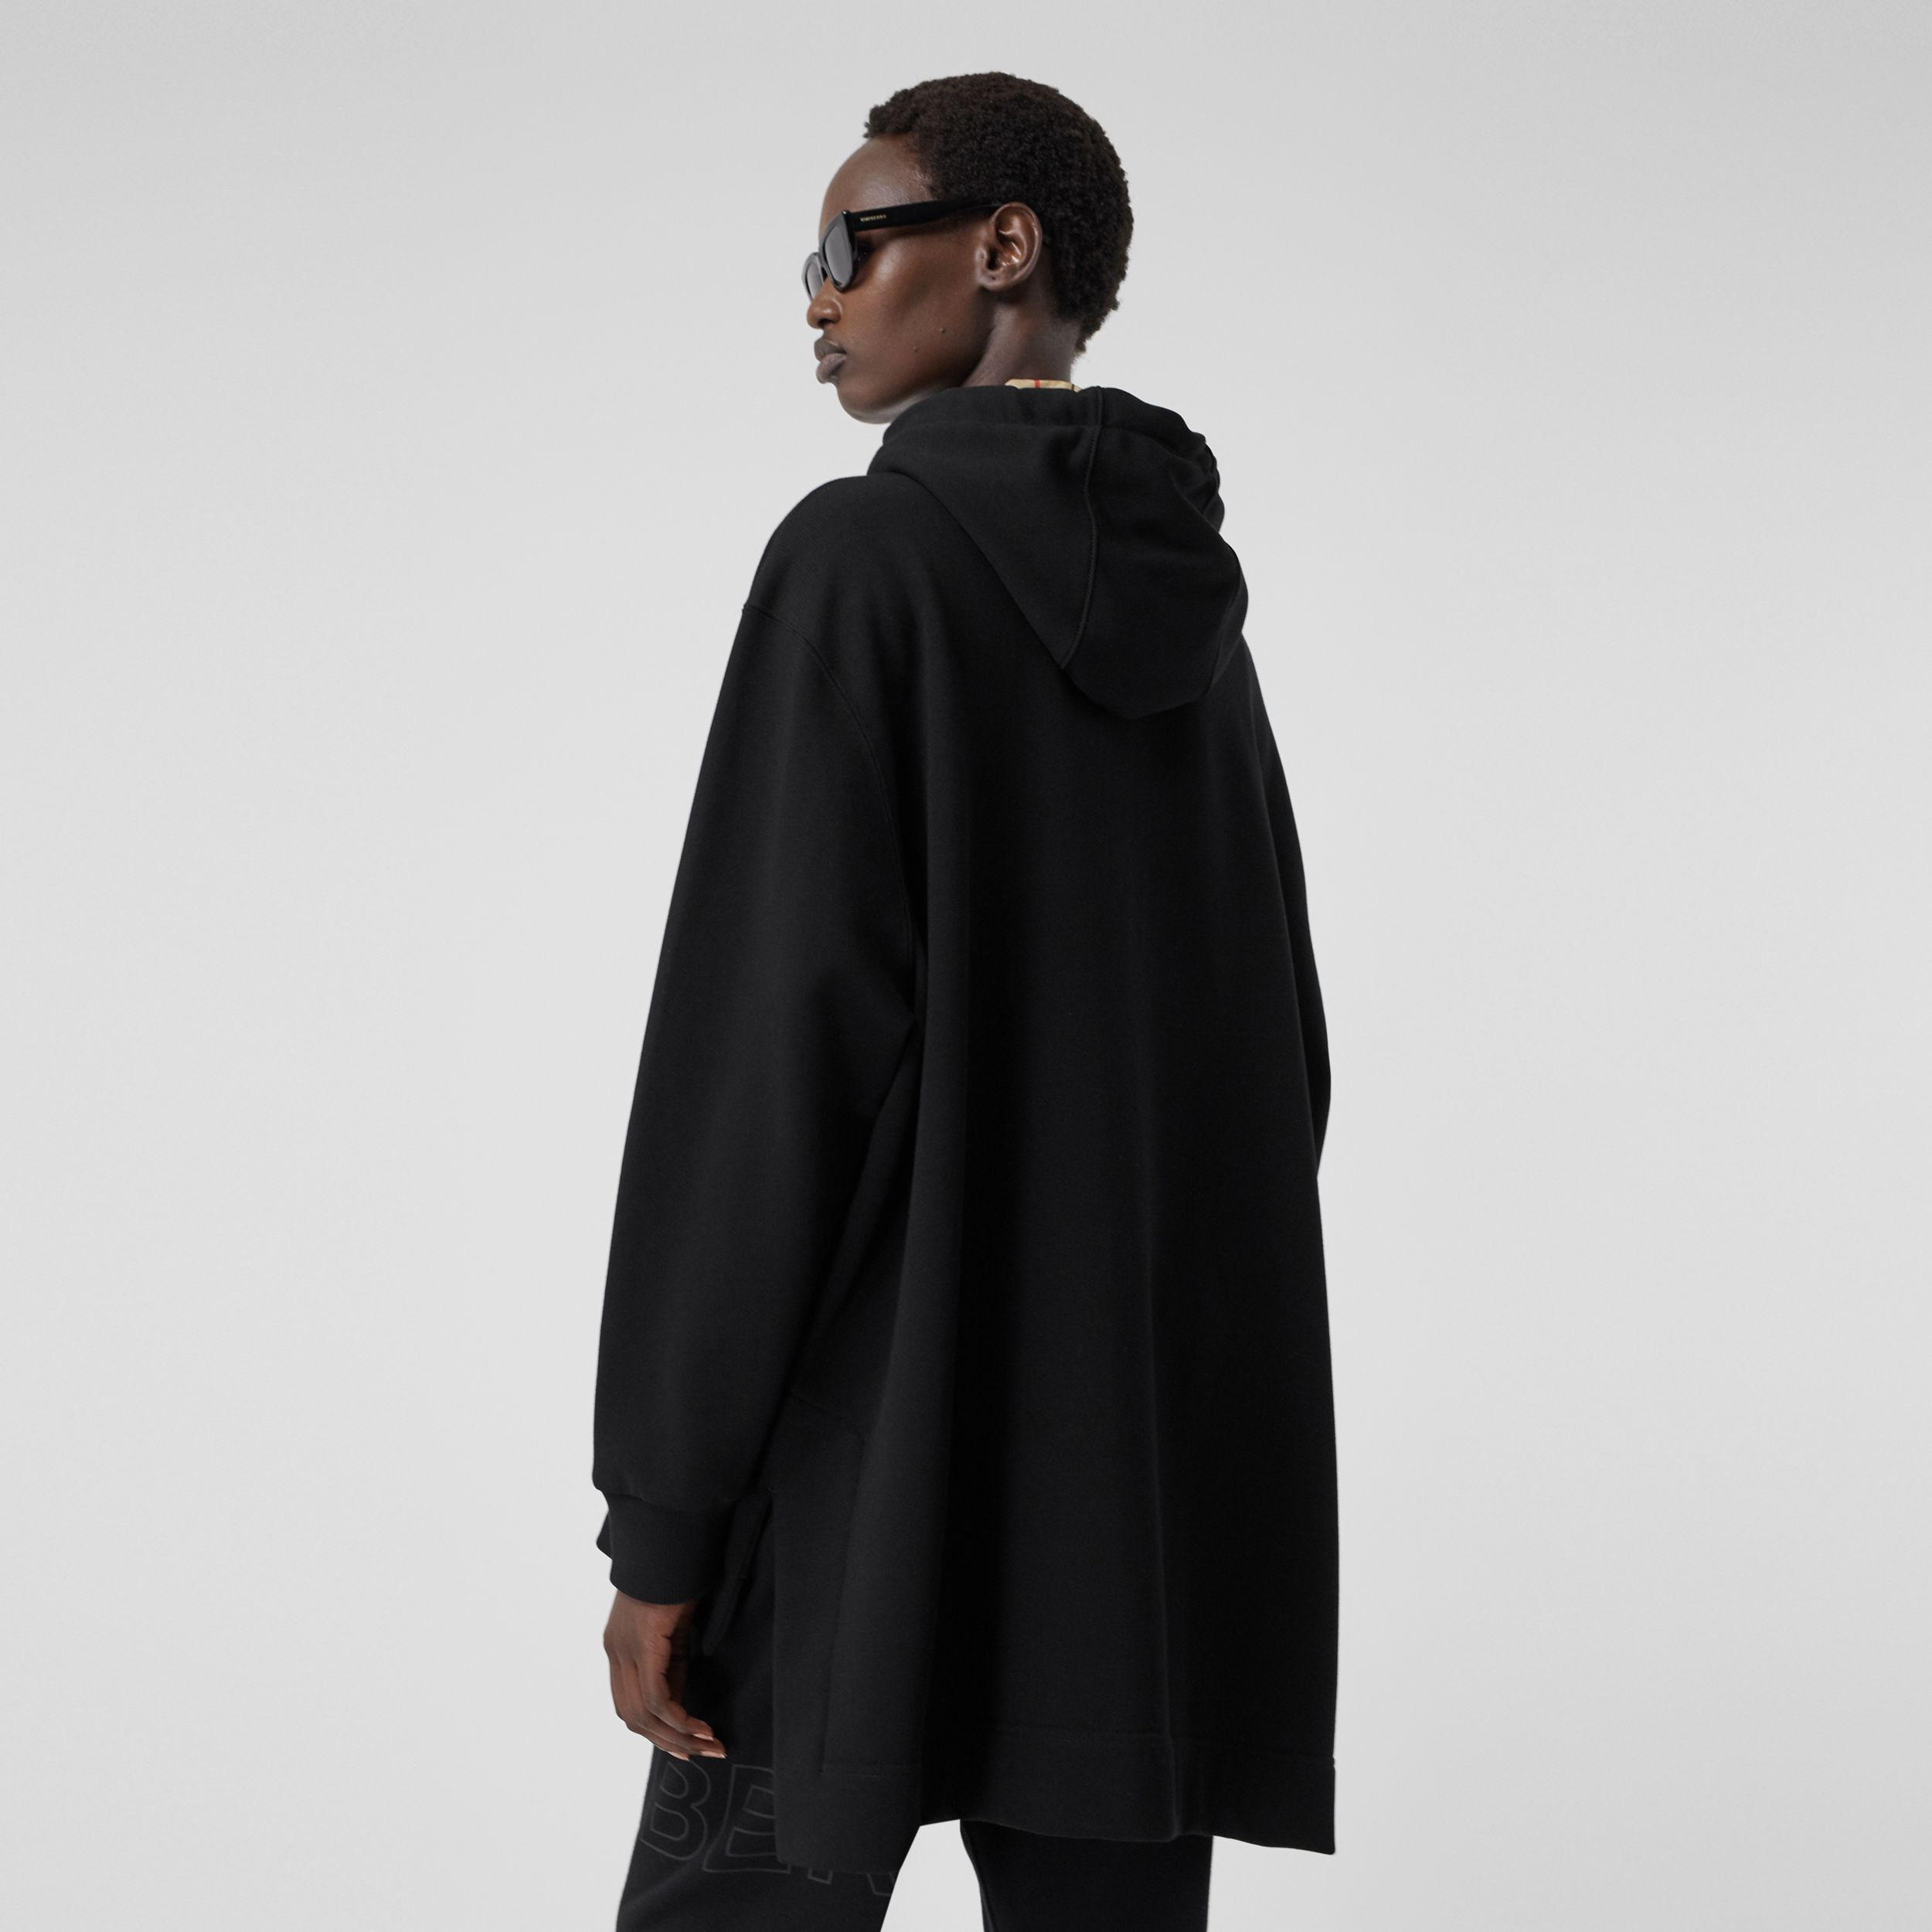 Stepped Hem Organic Cotton Oversized Hoodie in Black - Women | Burberry - 3